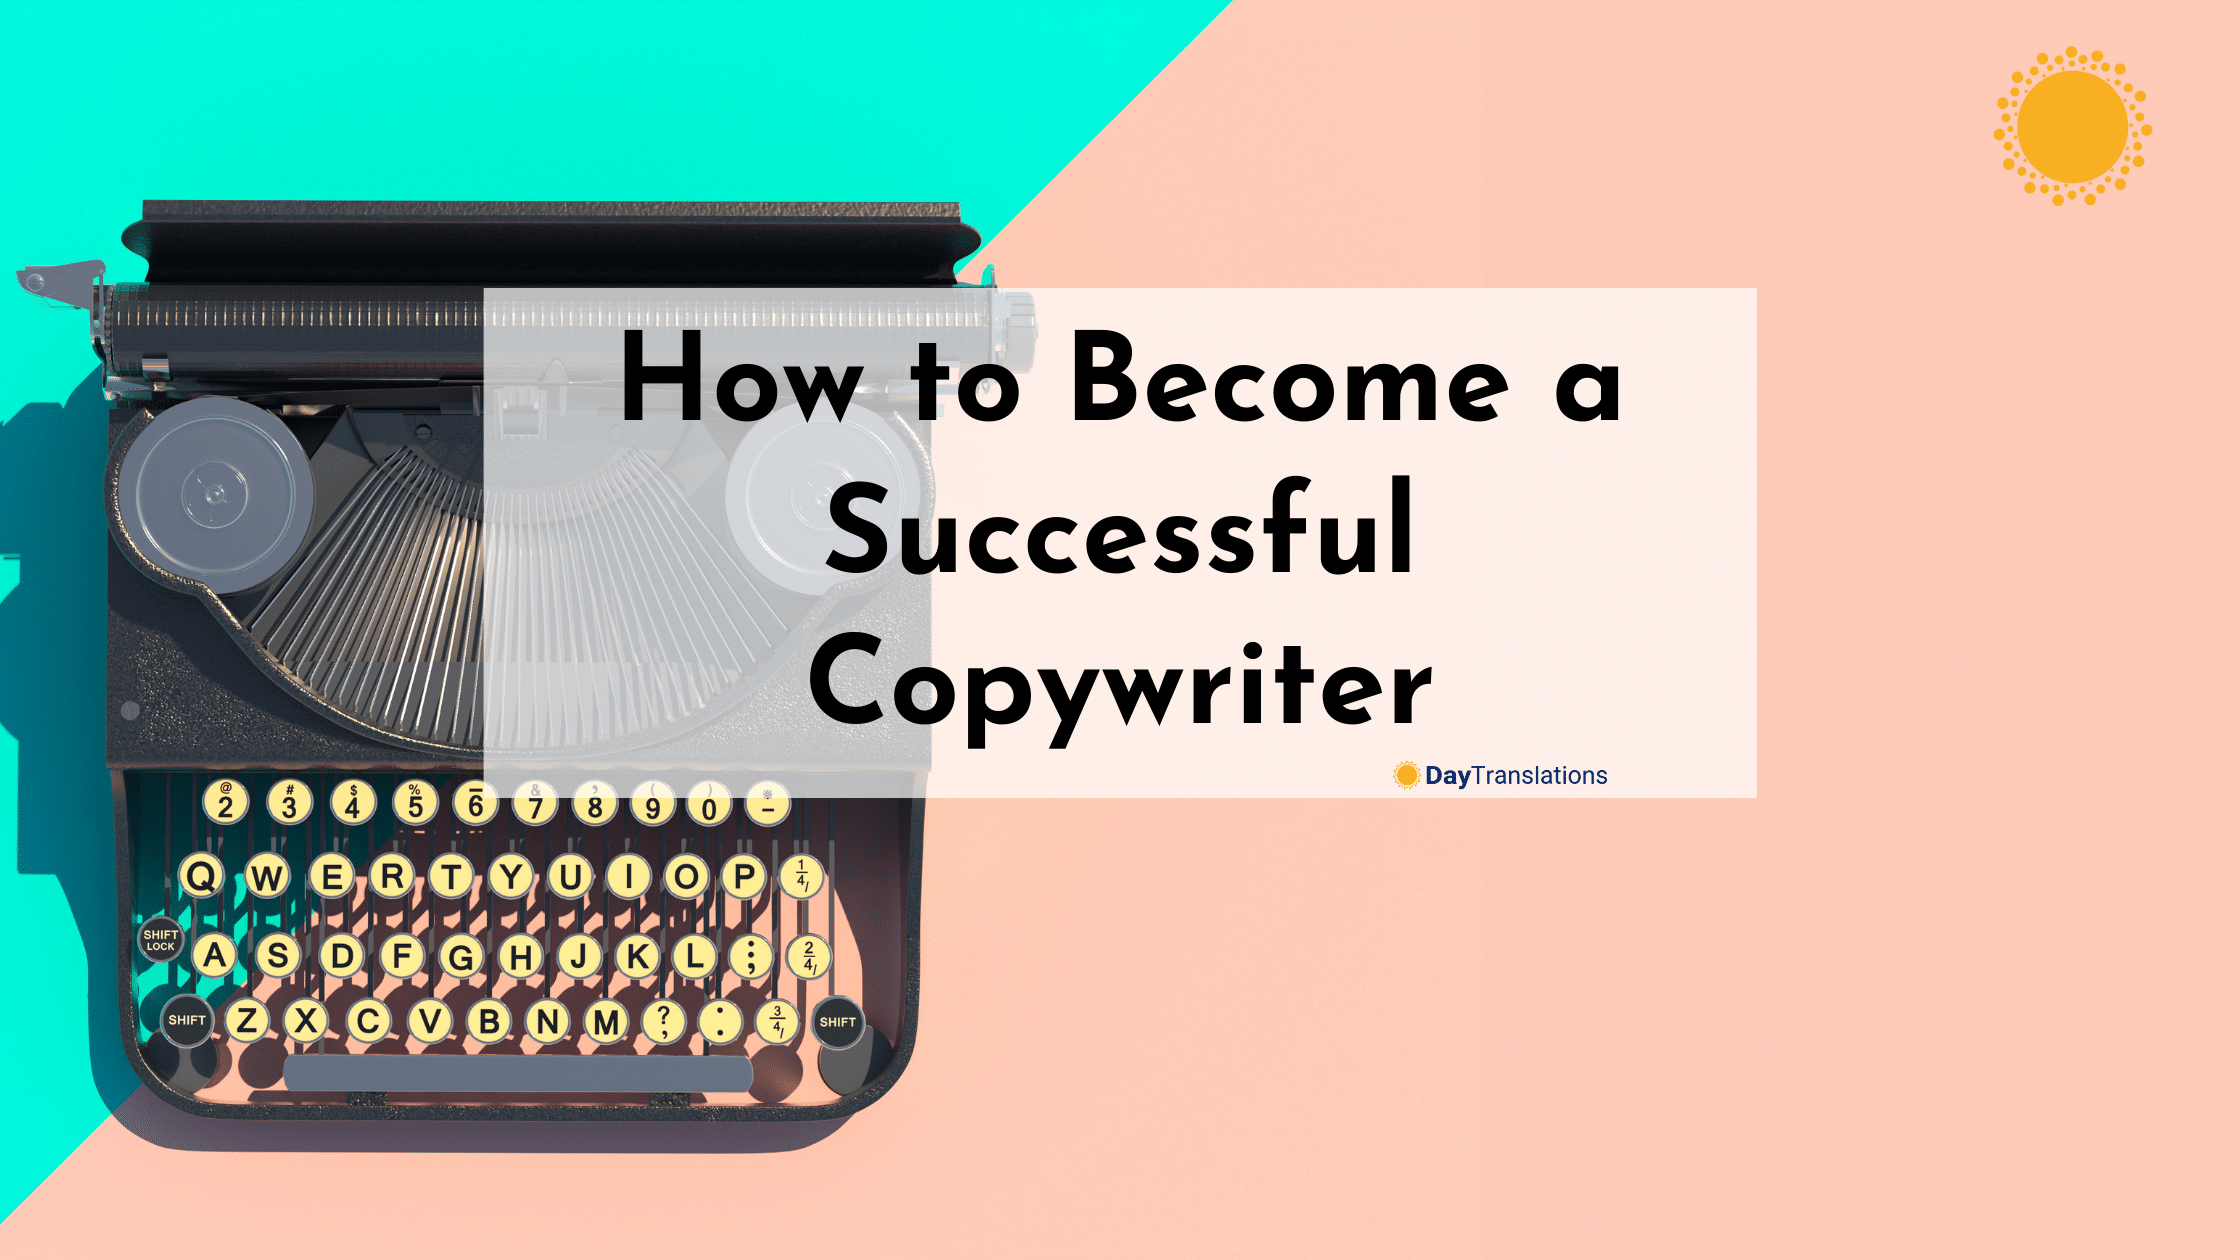 How to Become a Successful Copywriter